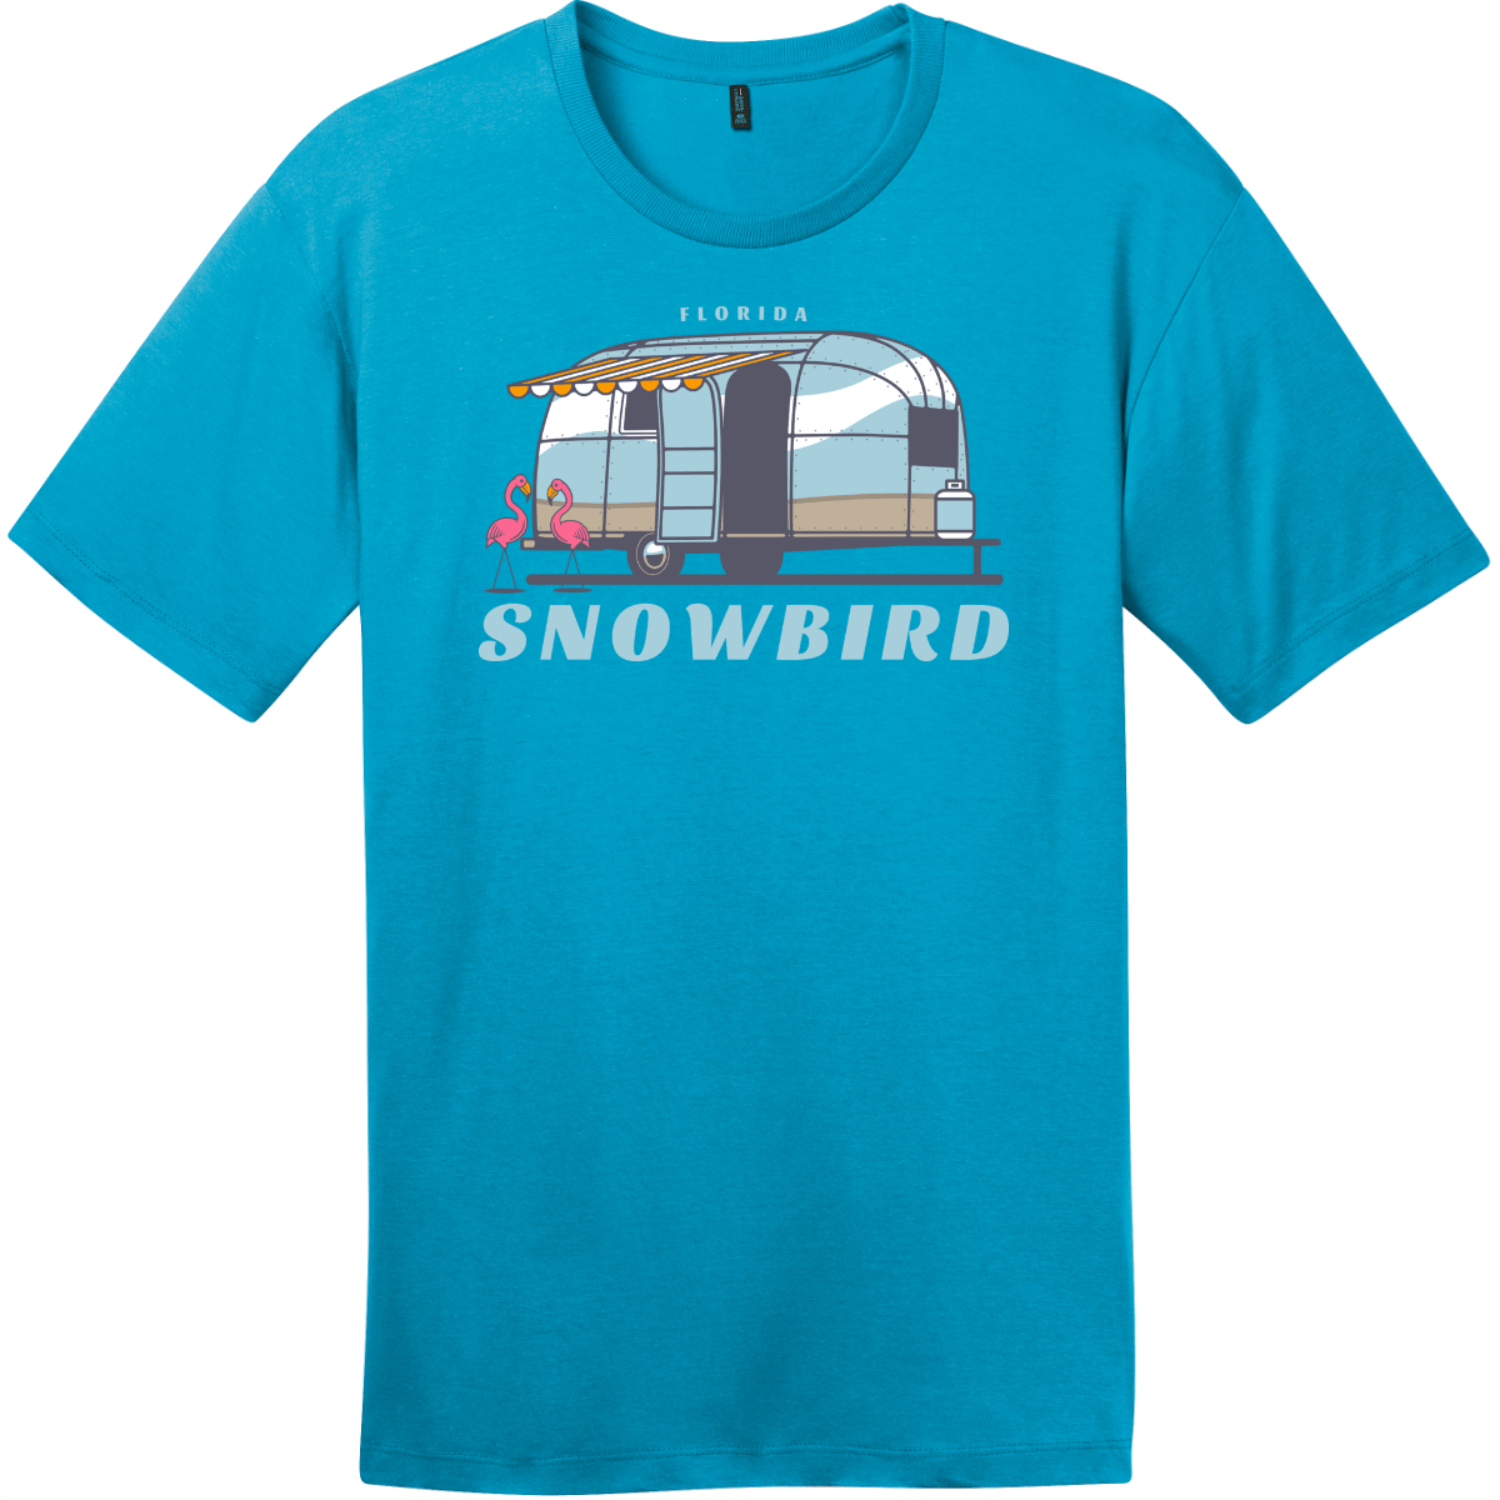 Florida Snowbird T-Shirt Bright Turquoise District Perfect Weight Tee DT104